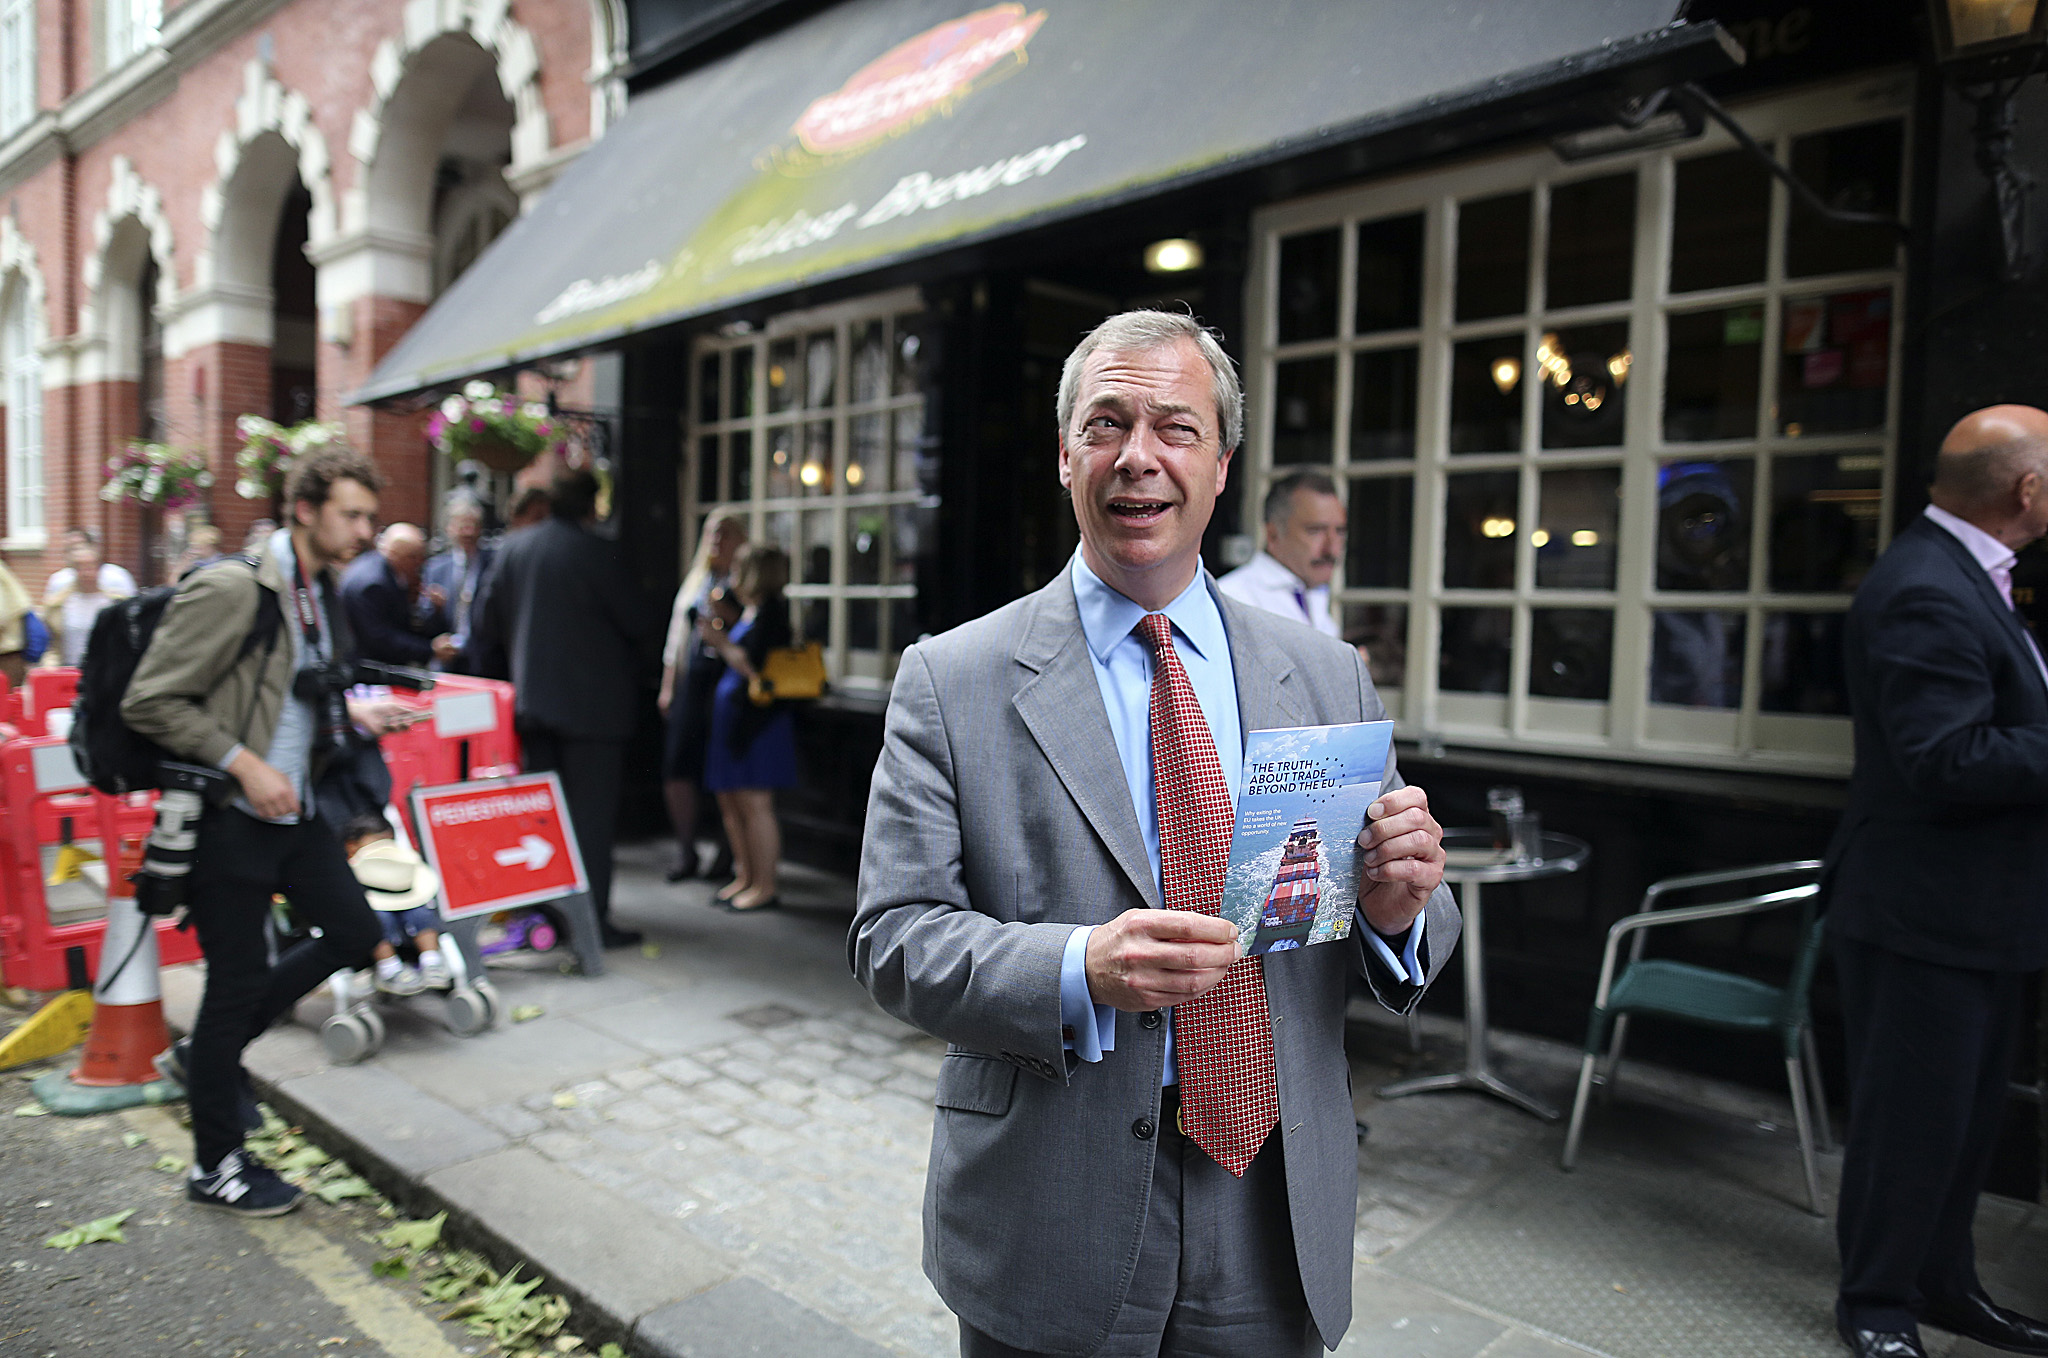 UKIP's leader, Nigel Farage, enjoys a pint of masterbrew in a pub in Westminster as UKIP launched their Euro referendum campaign.